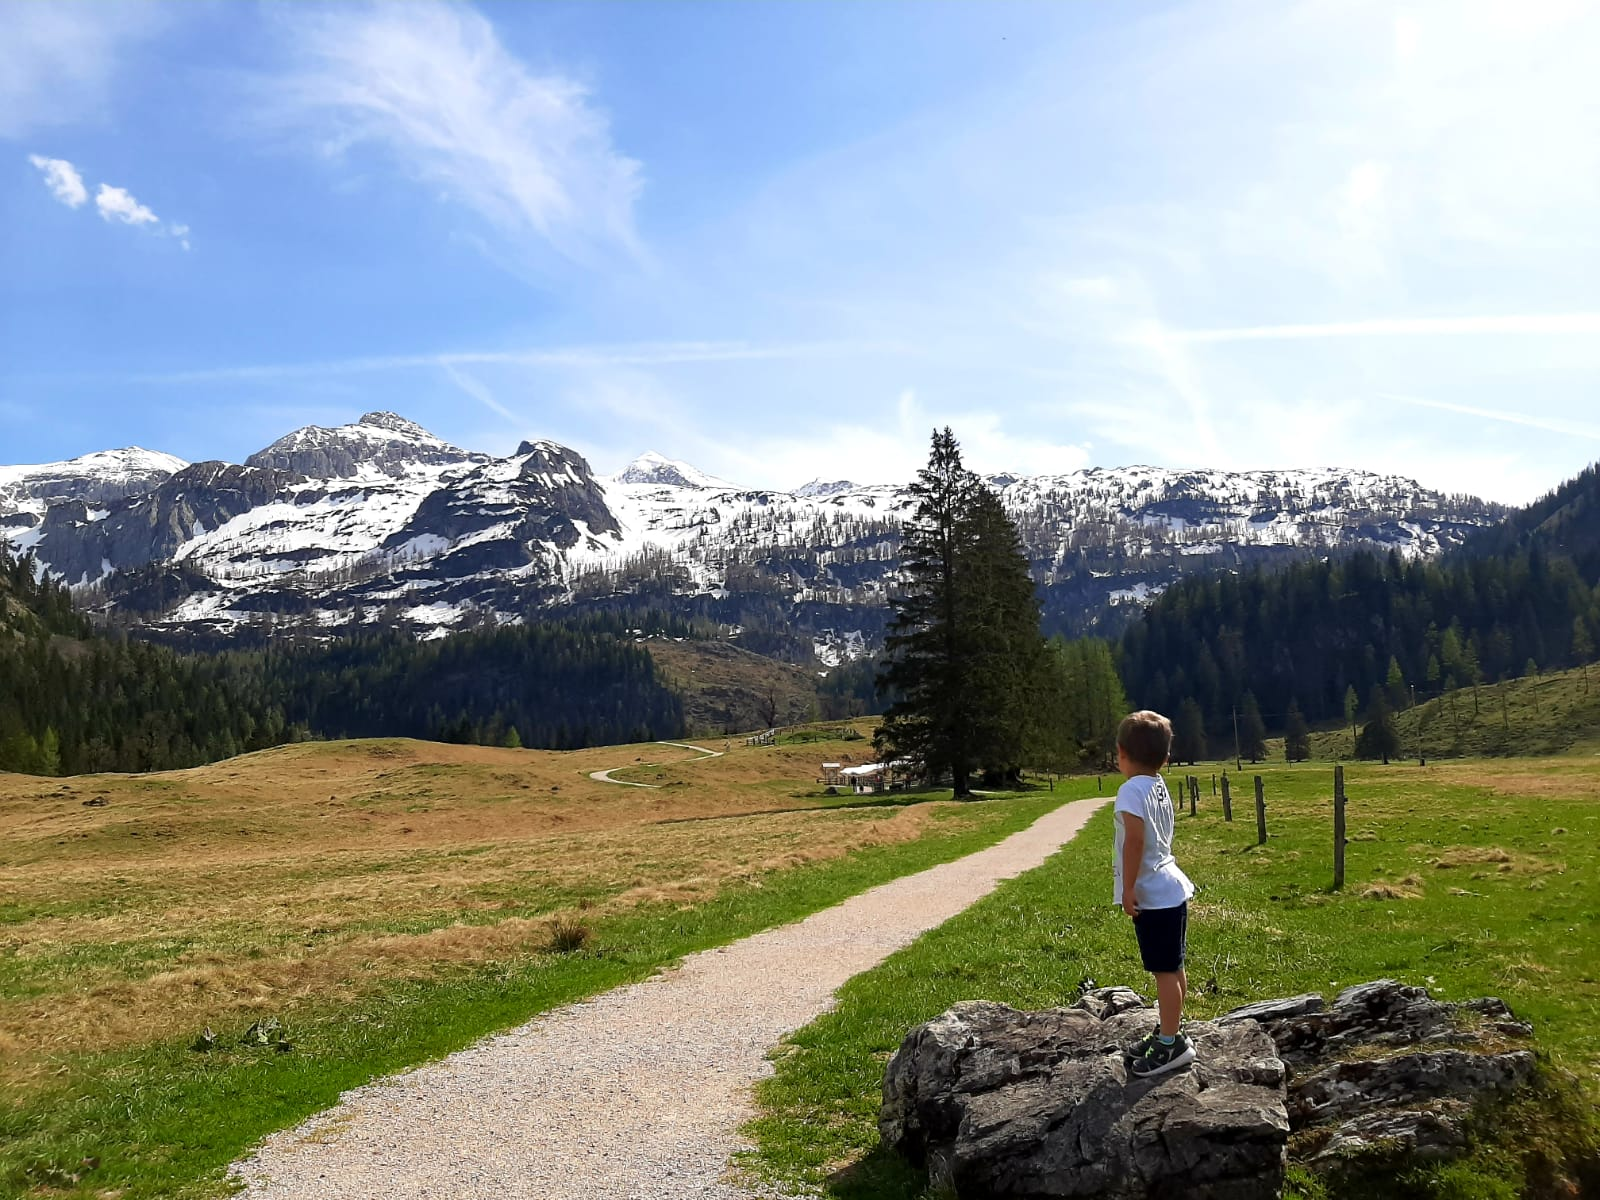 Hiking with kids, hiking trail suitable for prams